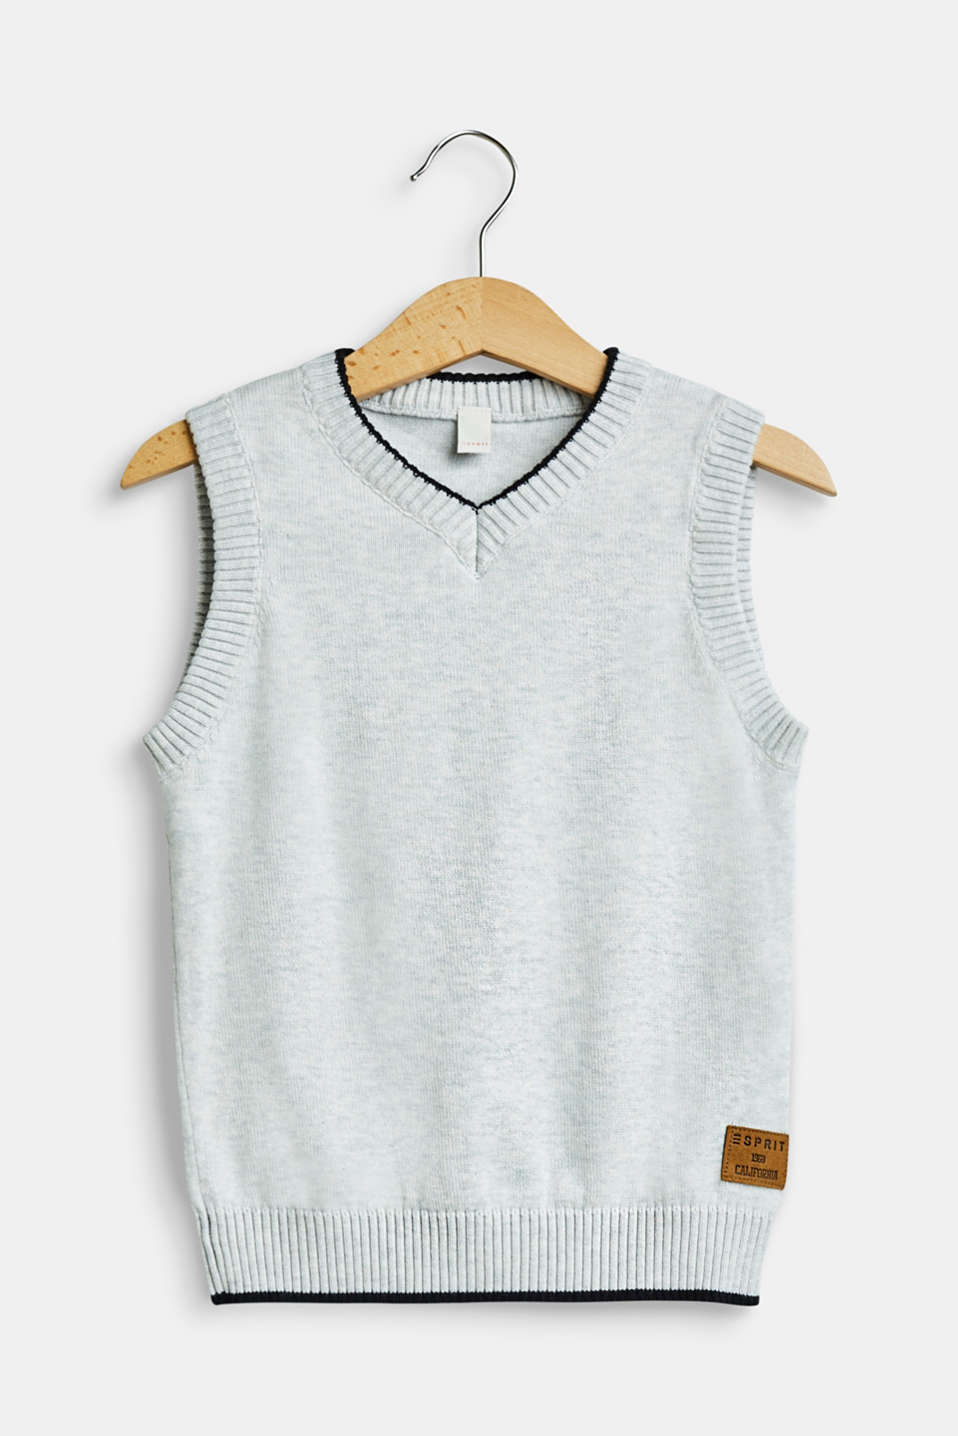 Esprit - 100% cotton tank top